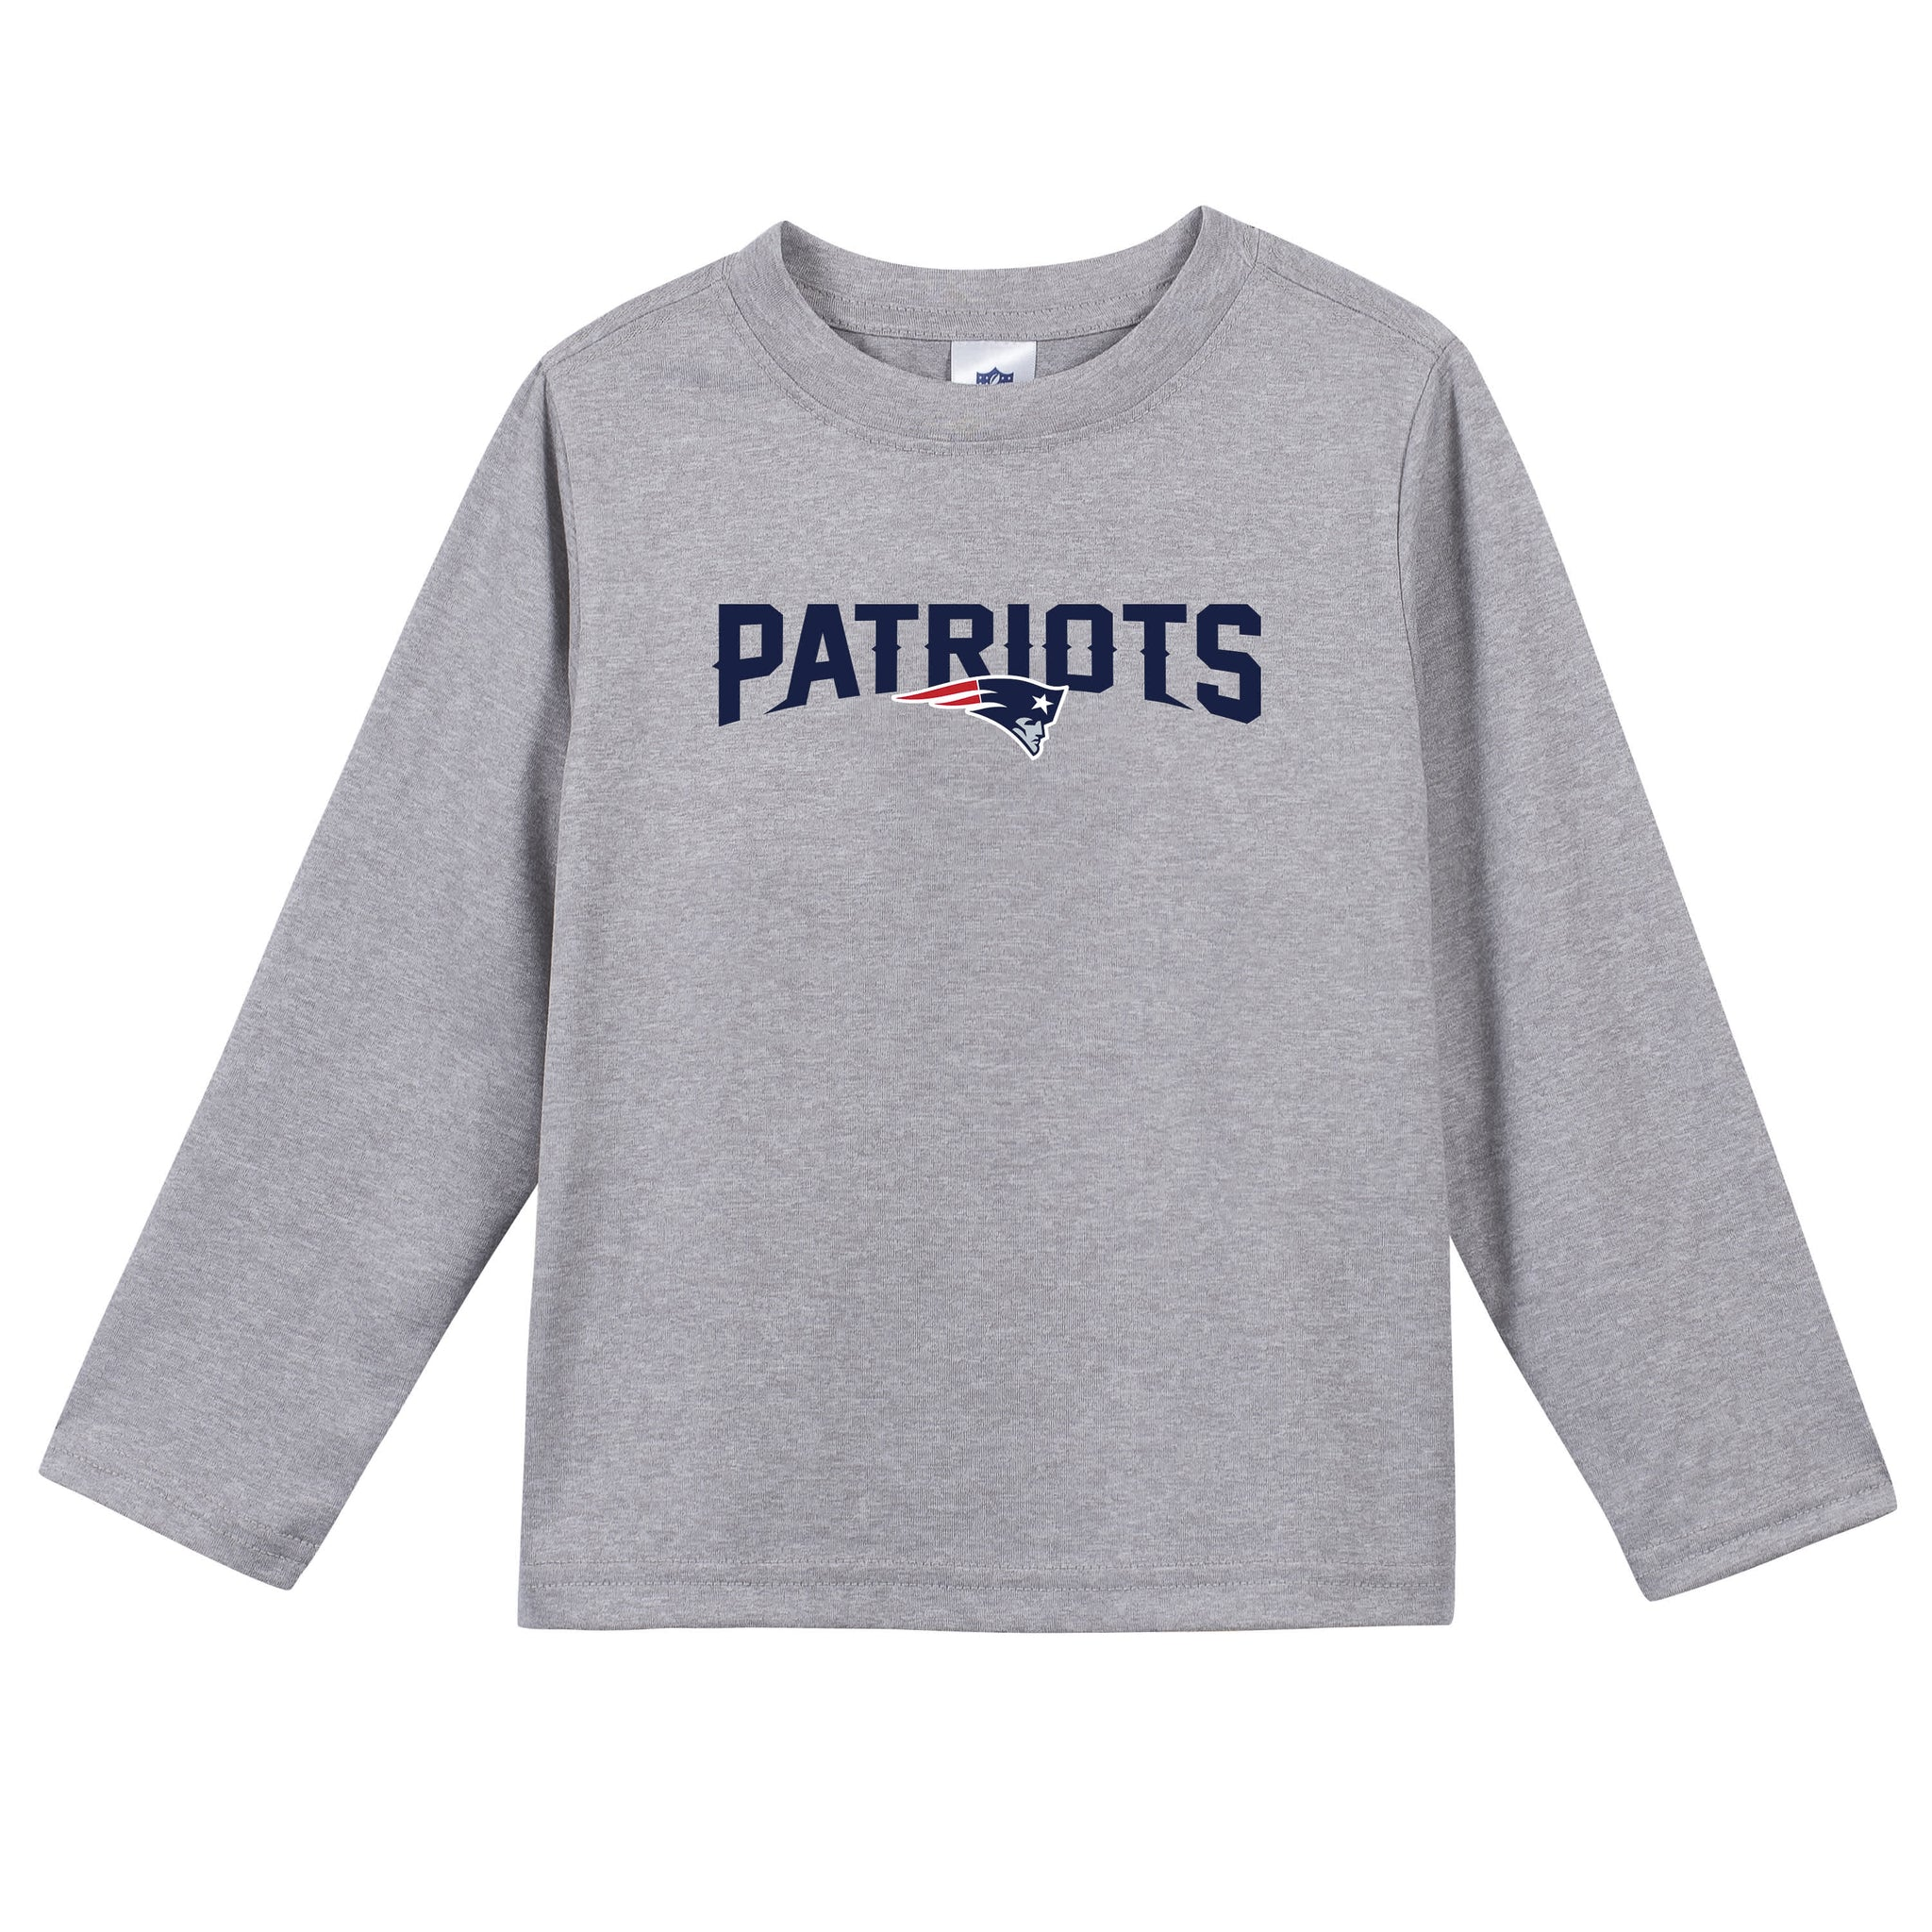 New England Patriots Toddler Boys Long Sleeve Tee Shirt-Gerber Childrenswear